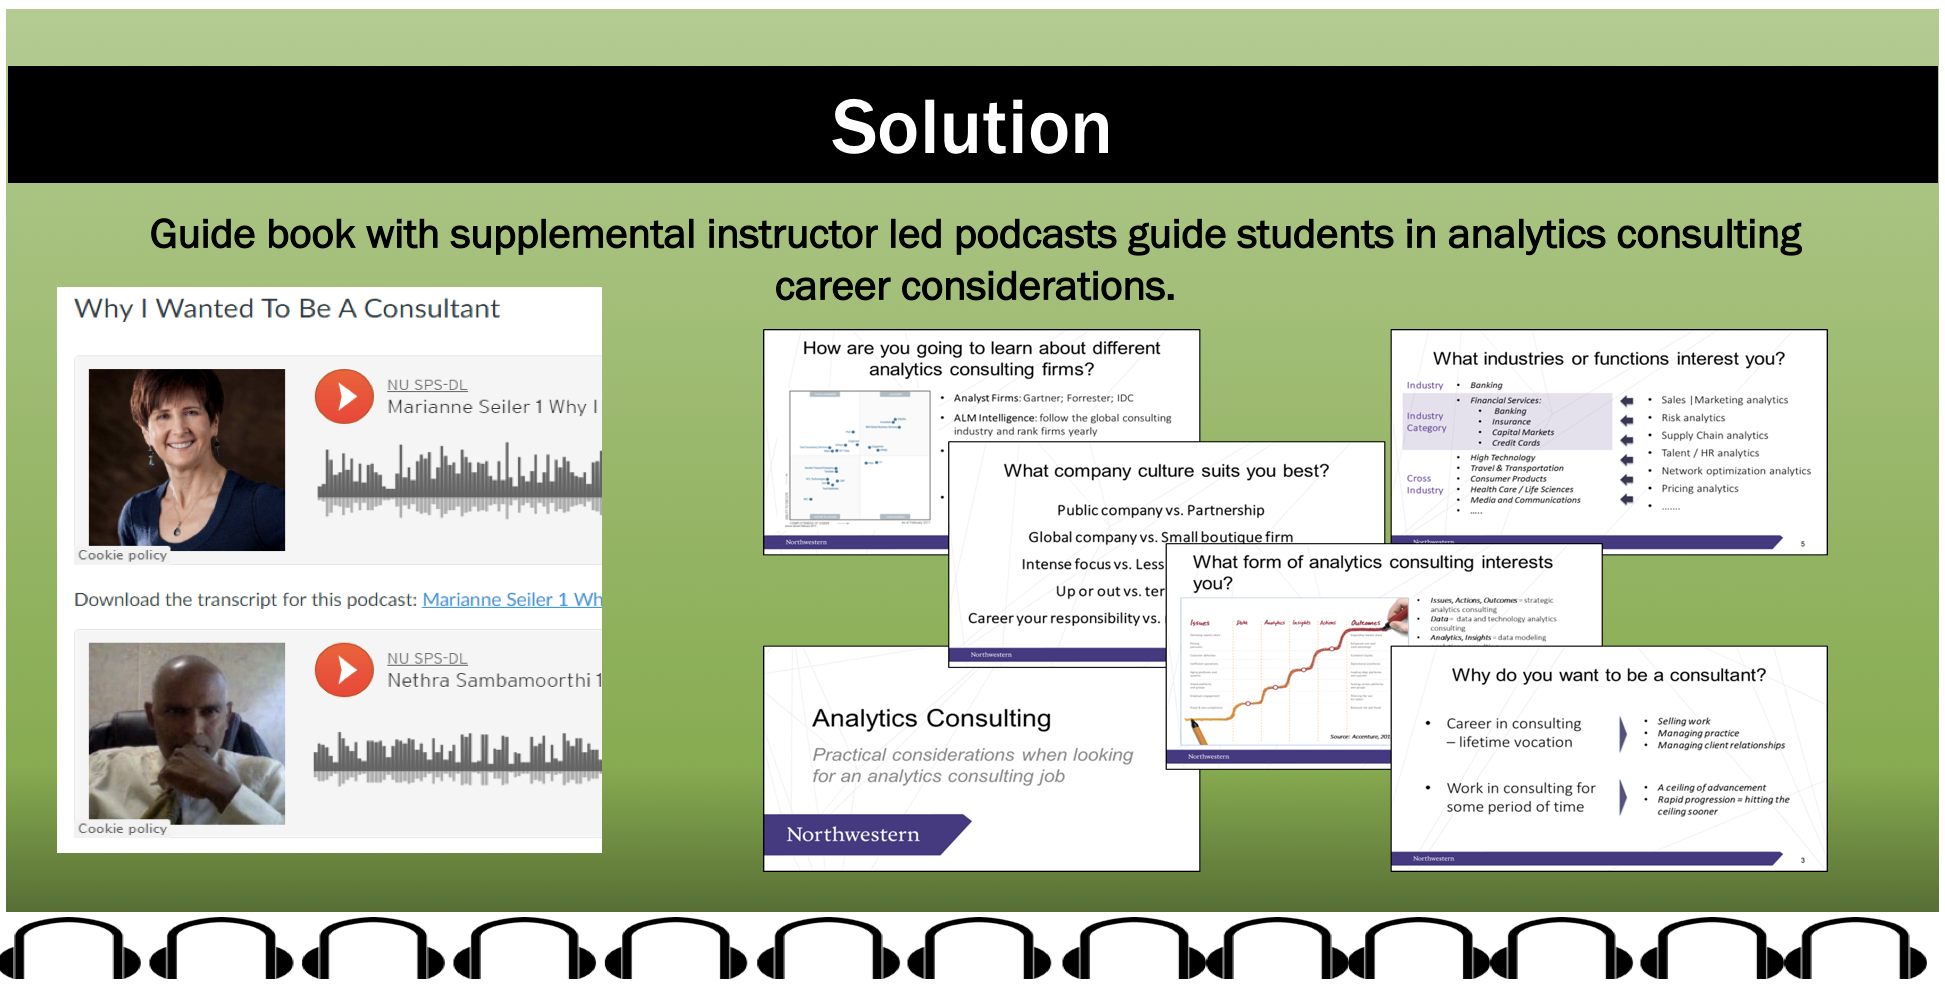 Solution Continued: We created a guide book with supplemental instructor led podcasts to guide students in analytics consulting career considerations.